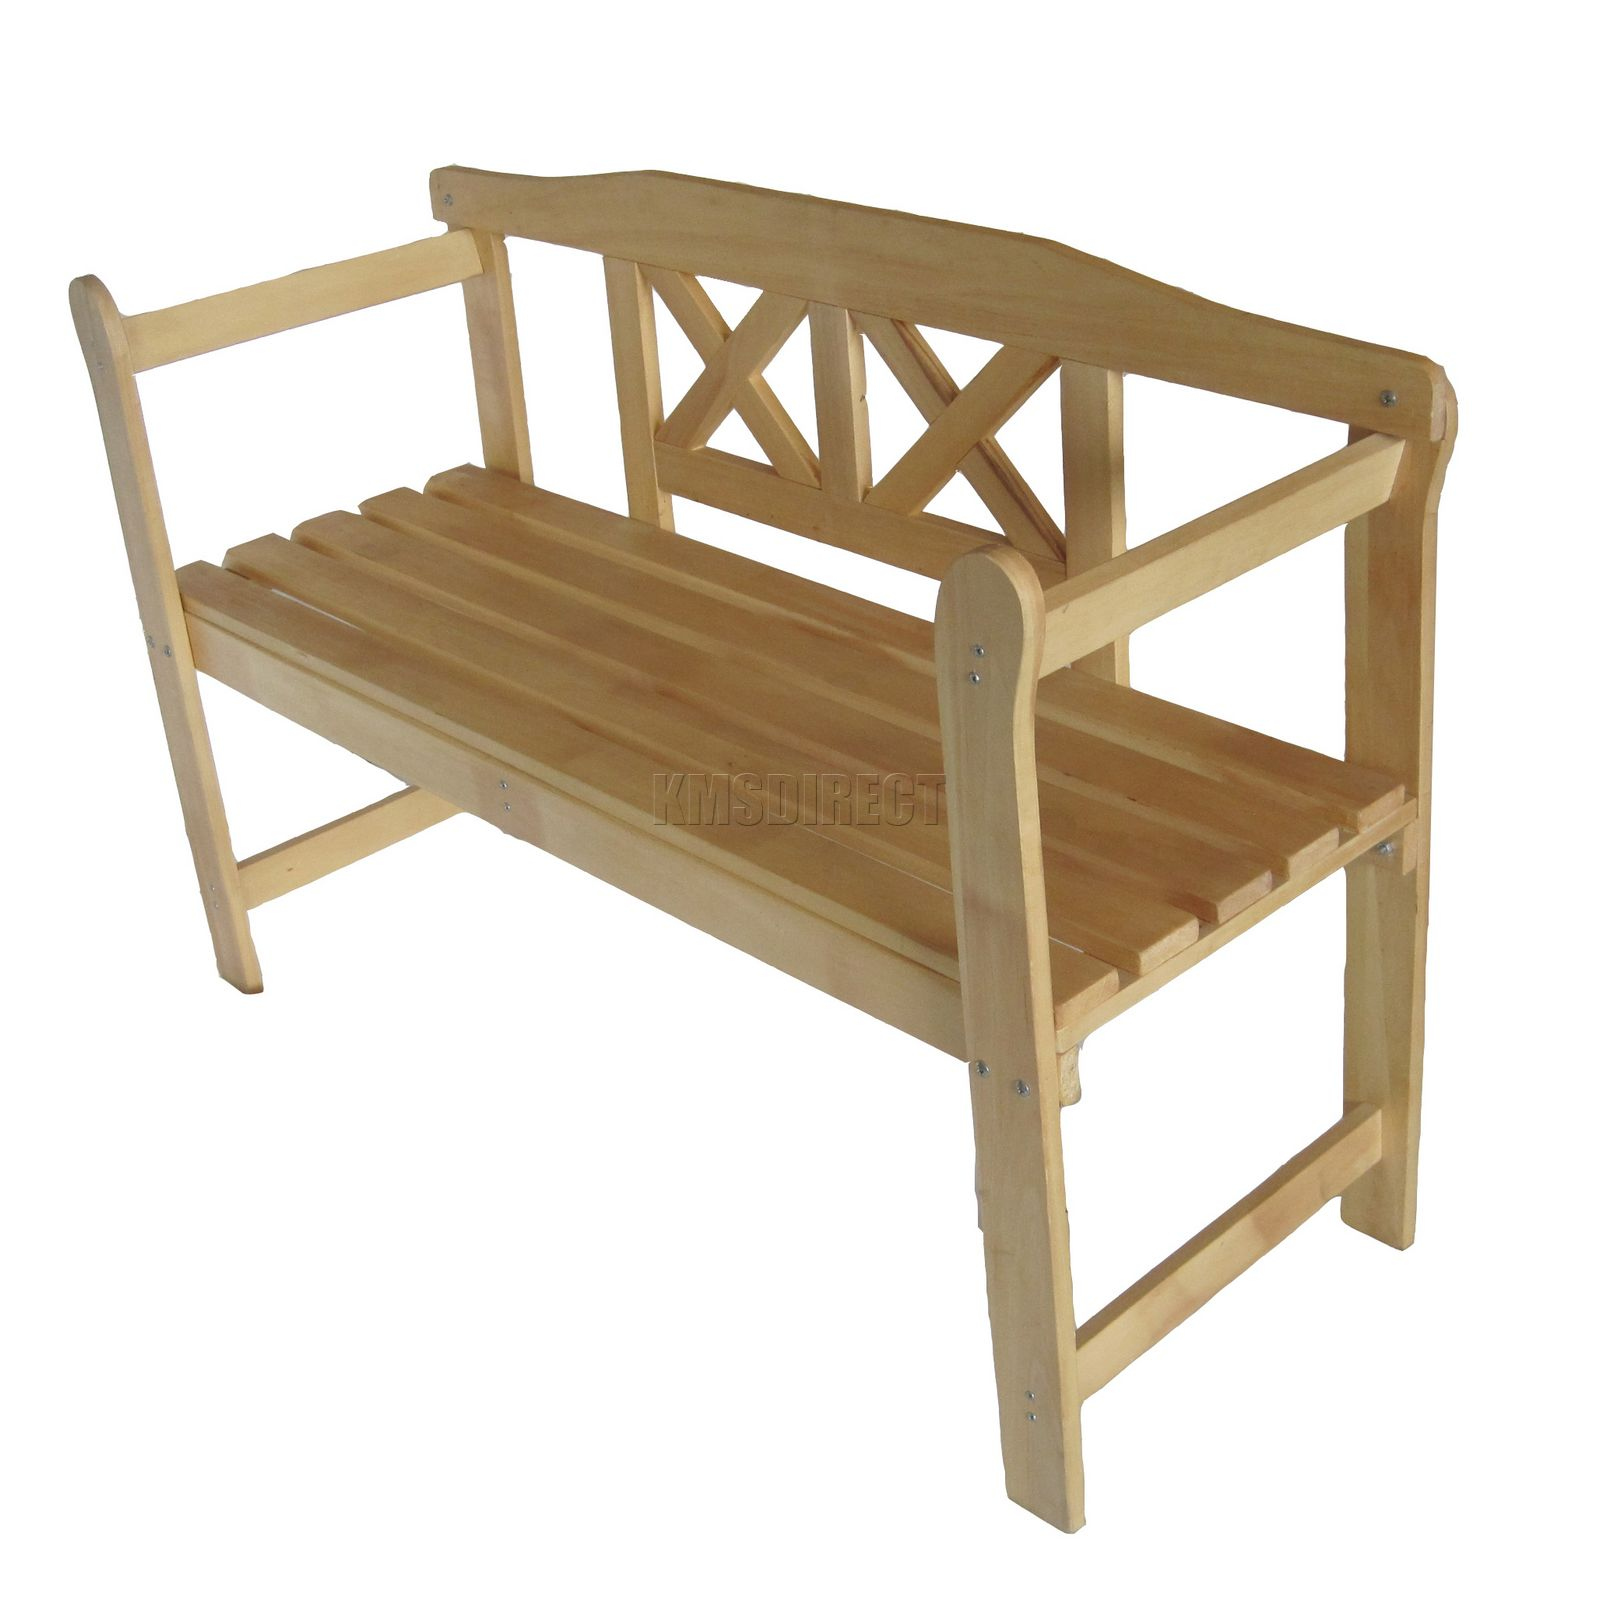 Outdoor home wooden seat seater garden bench furniture